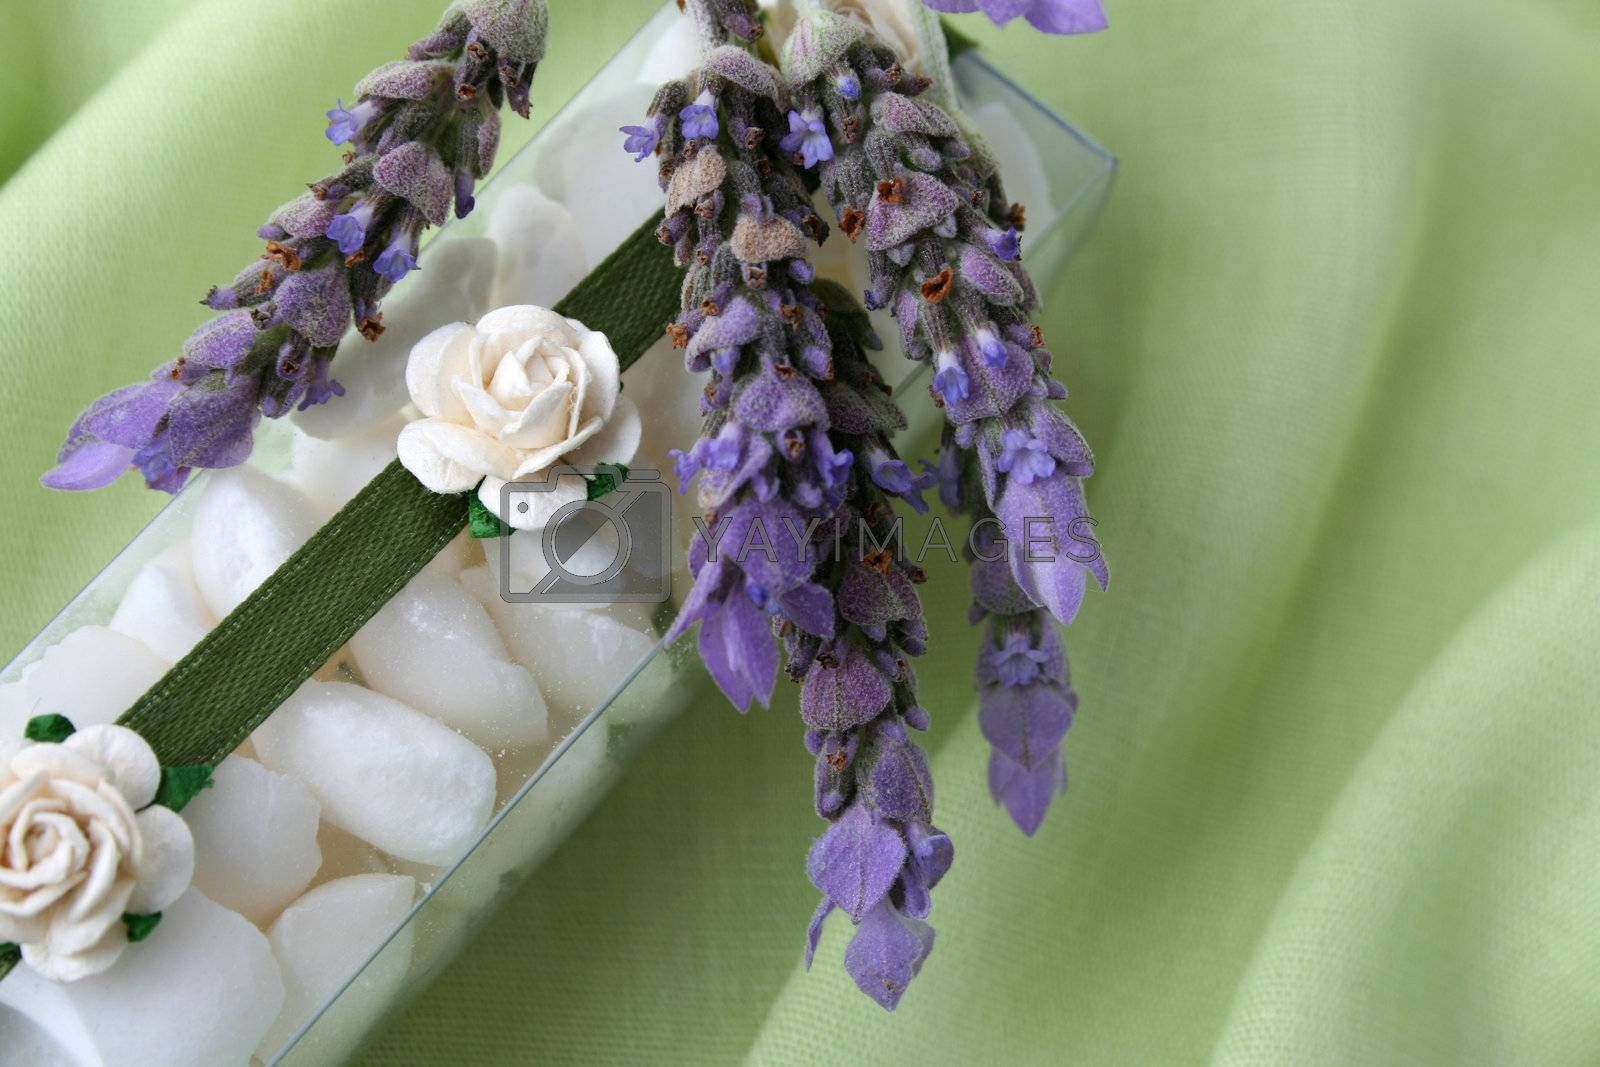 White bath crystals in a PVC box decorated with flowers